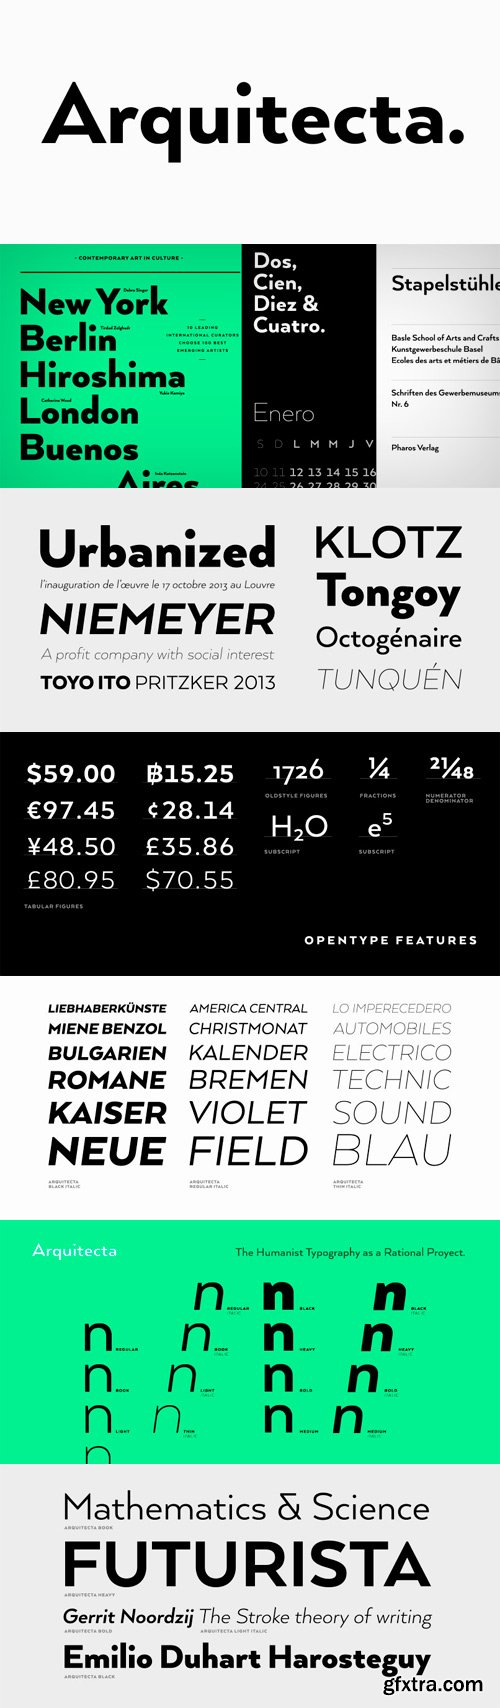 Arquitecta Font Family - 16 Fonts for $126